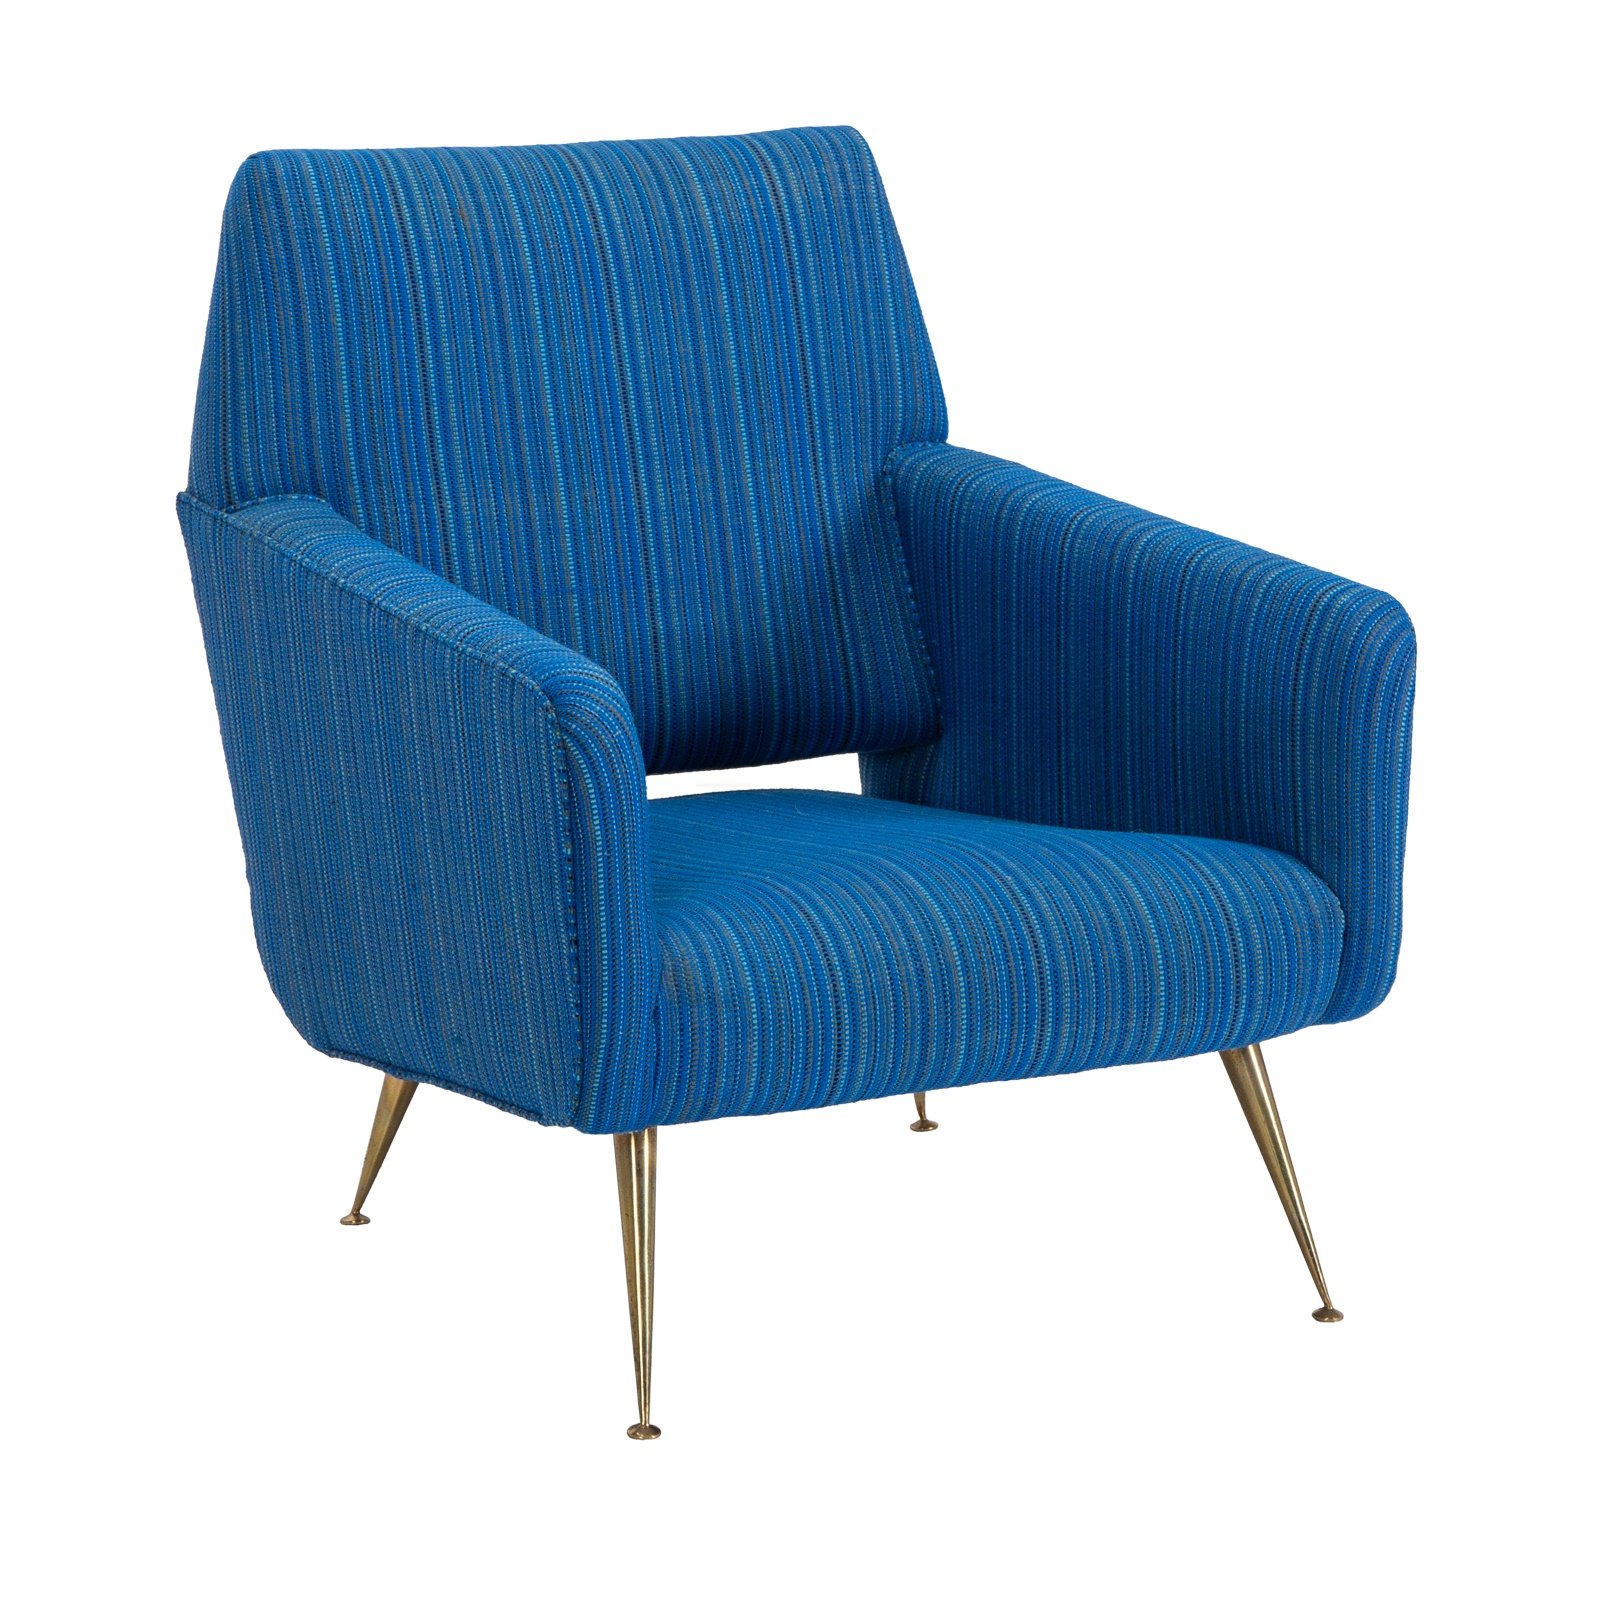 Gio Ponti Style Lounge Chair His  Event Trade Show